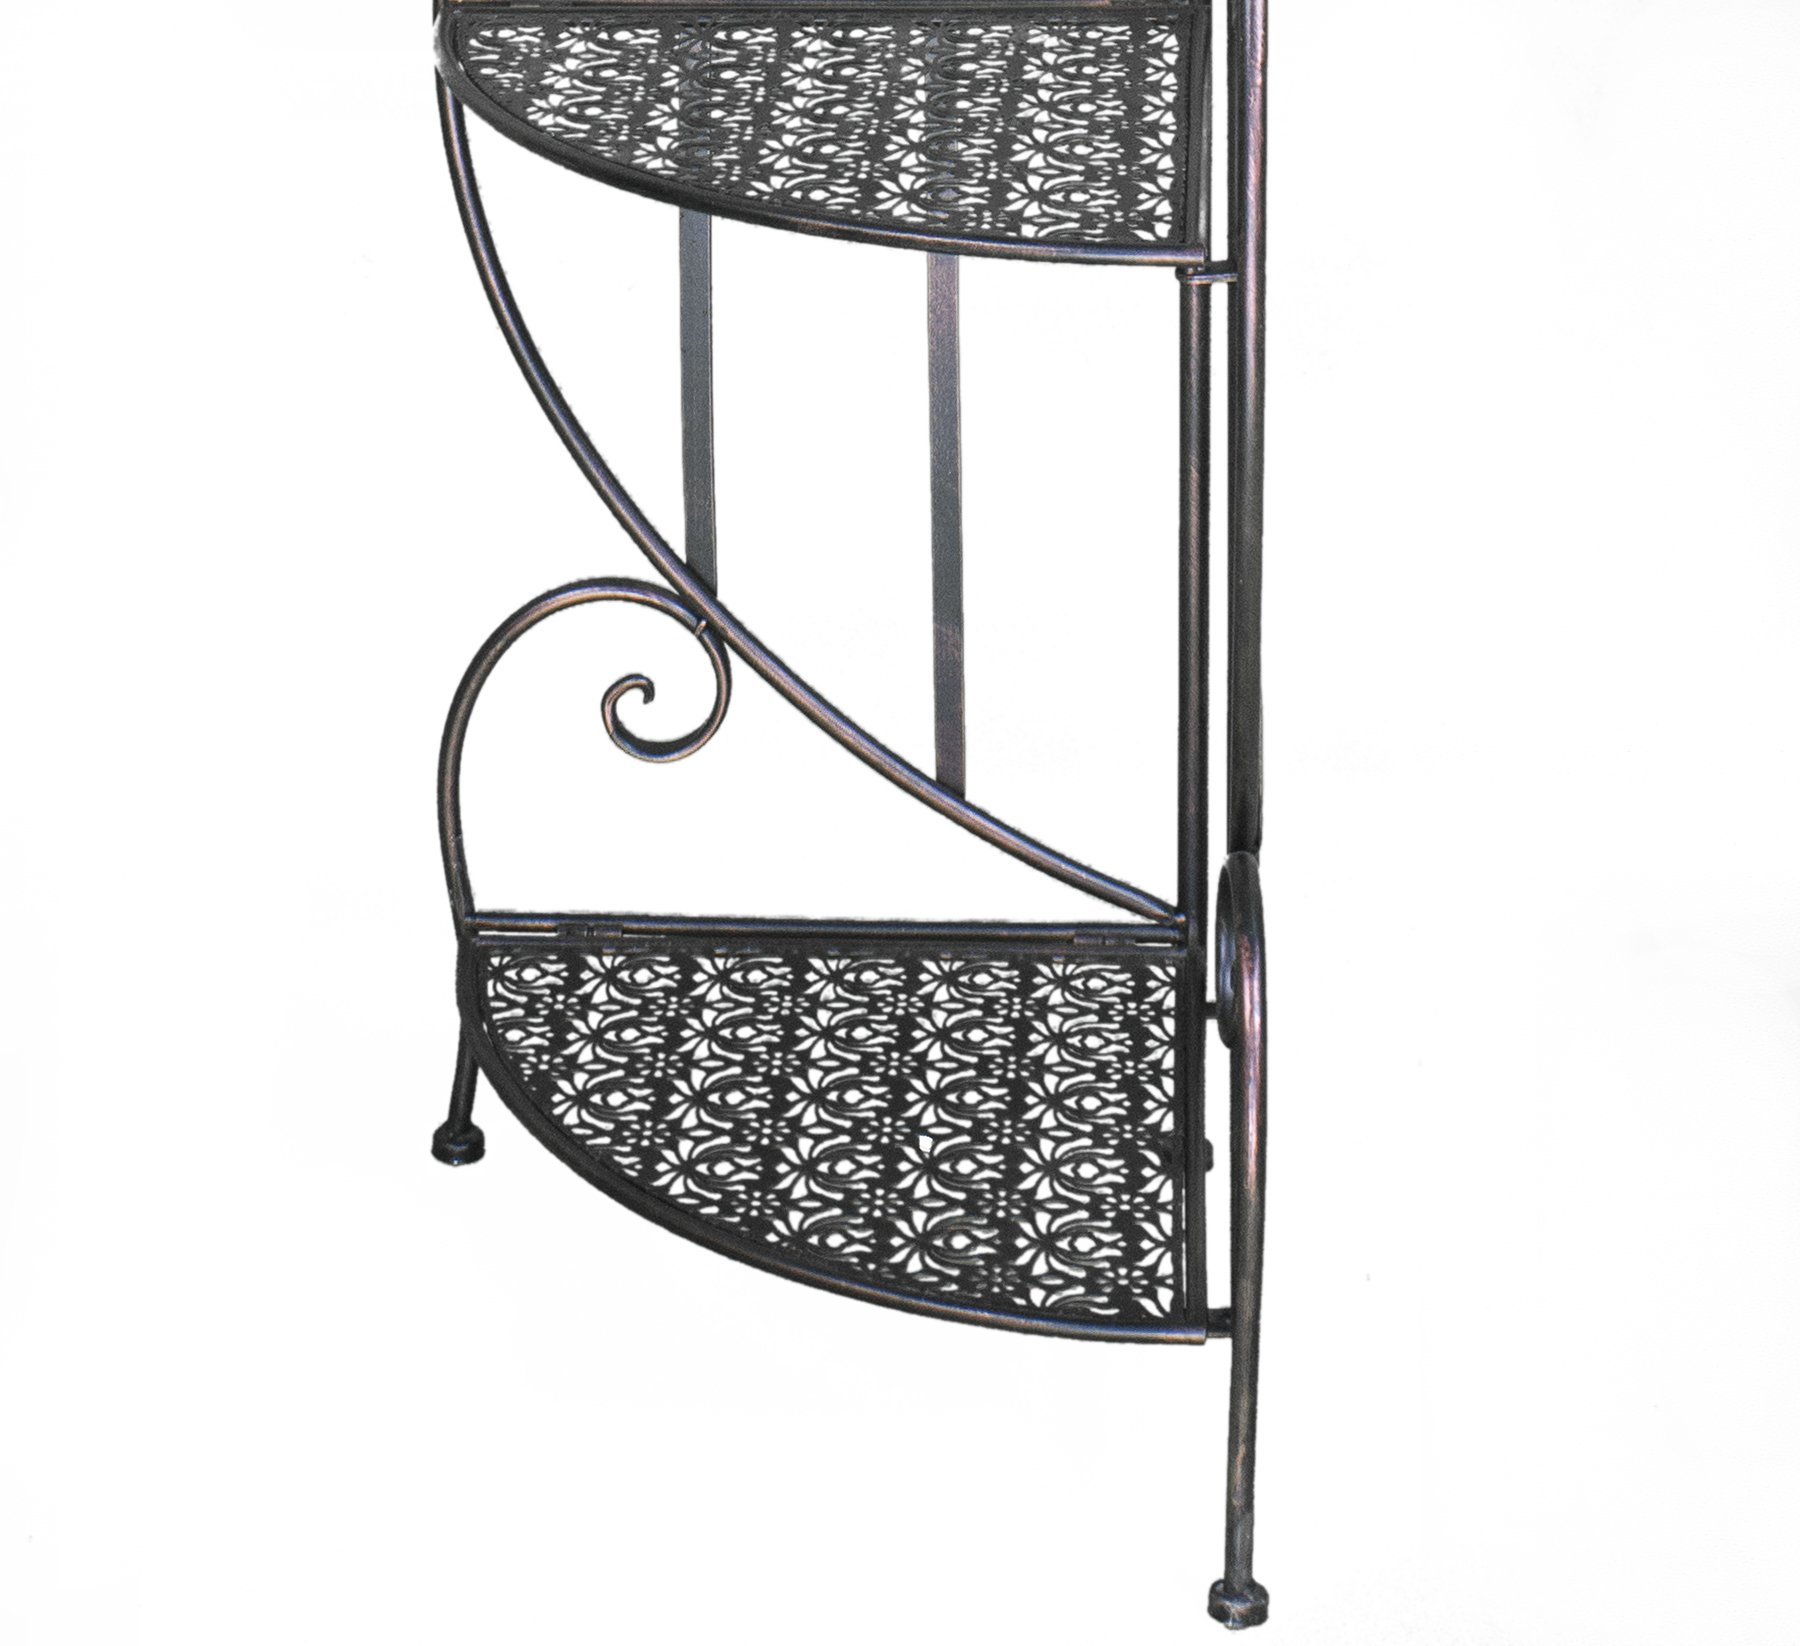 Heather Ann Creations W190795-BC Daisy Kitchen Corner Bakers Rack, Blackened Copper by Heather Ann Creations (Image #4)